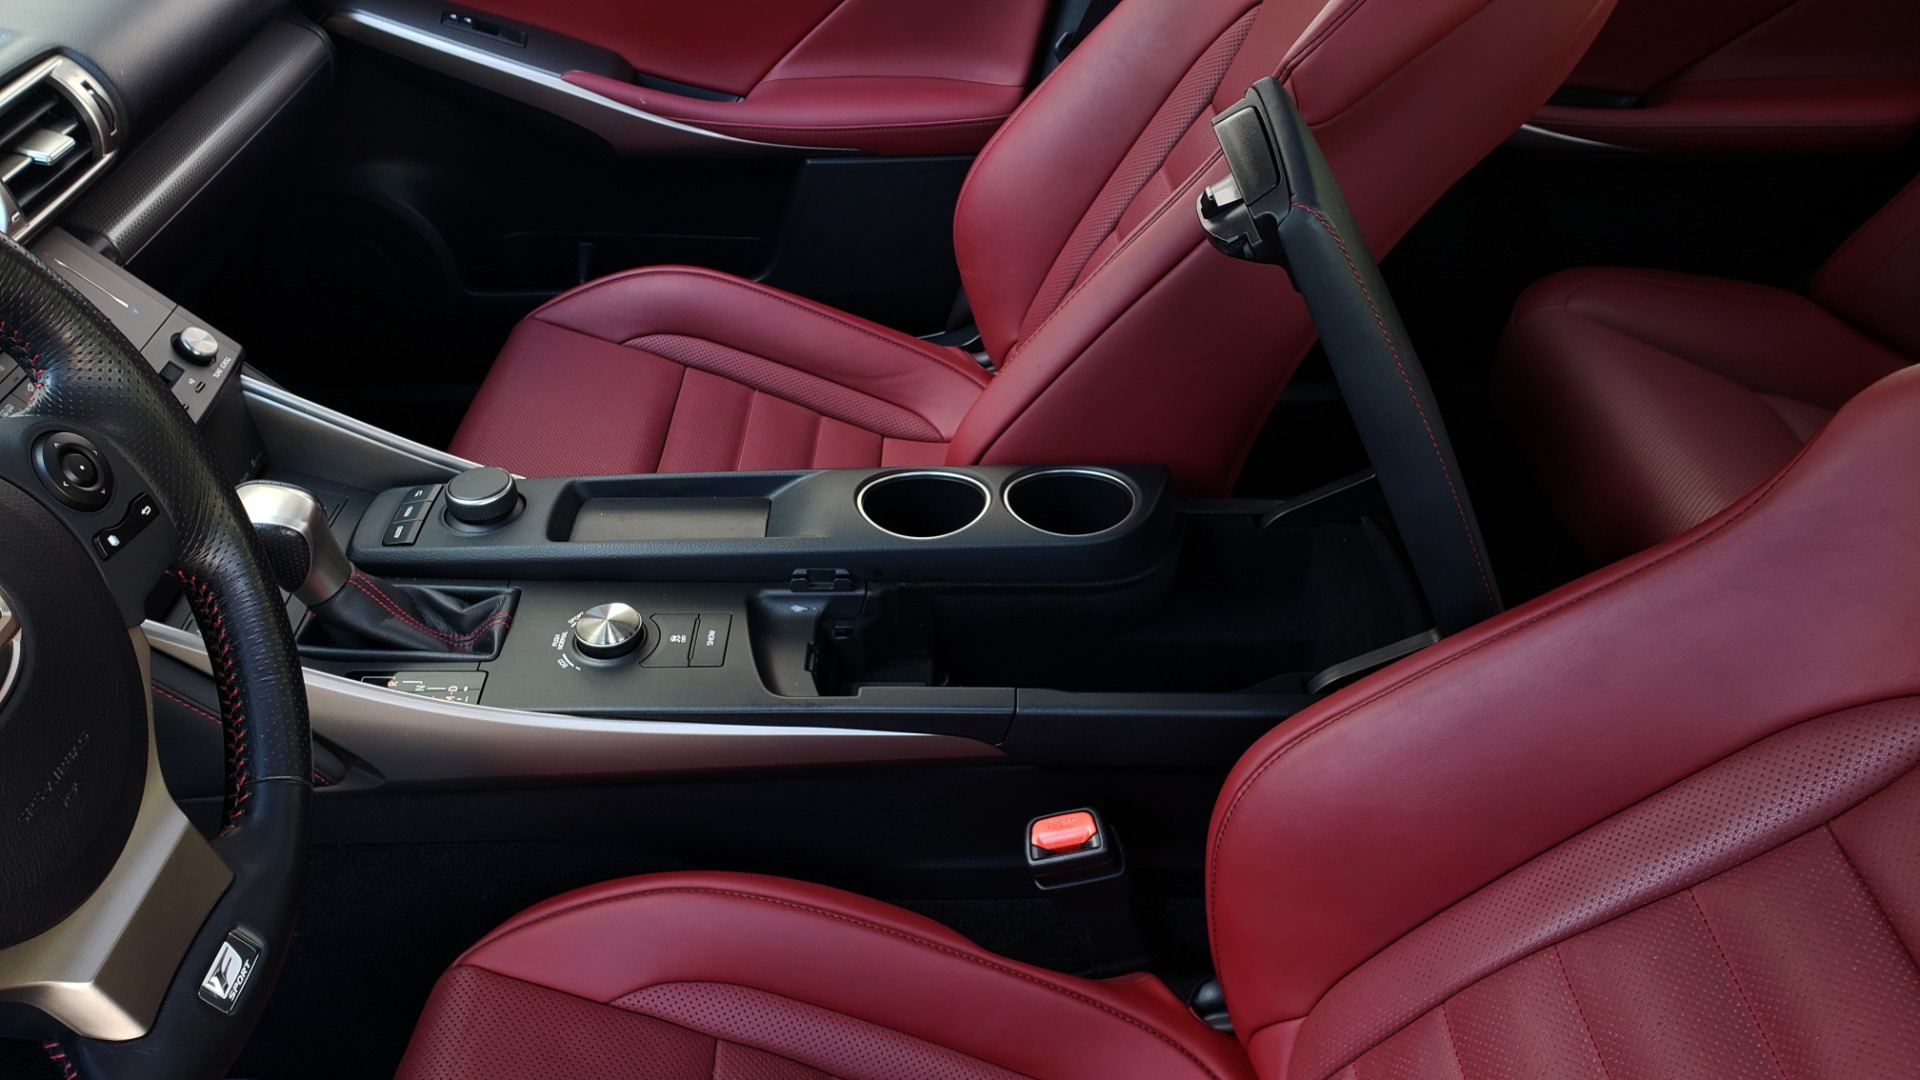 Used 2016 Lexus IS 300 F-SPORT / SUNROOF / BSM / VENTILATED SEATS / REARVIEW for sale Sold at Formula Imports in Charlotte NC 28227 51